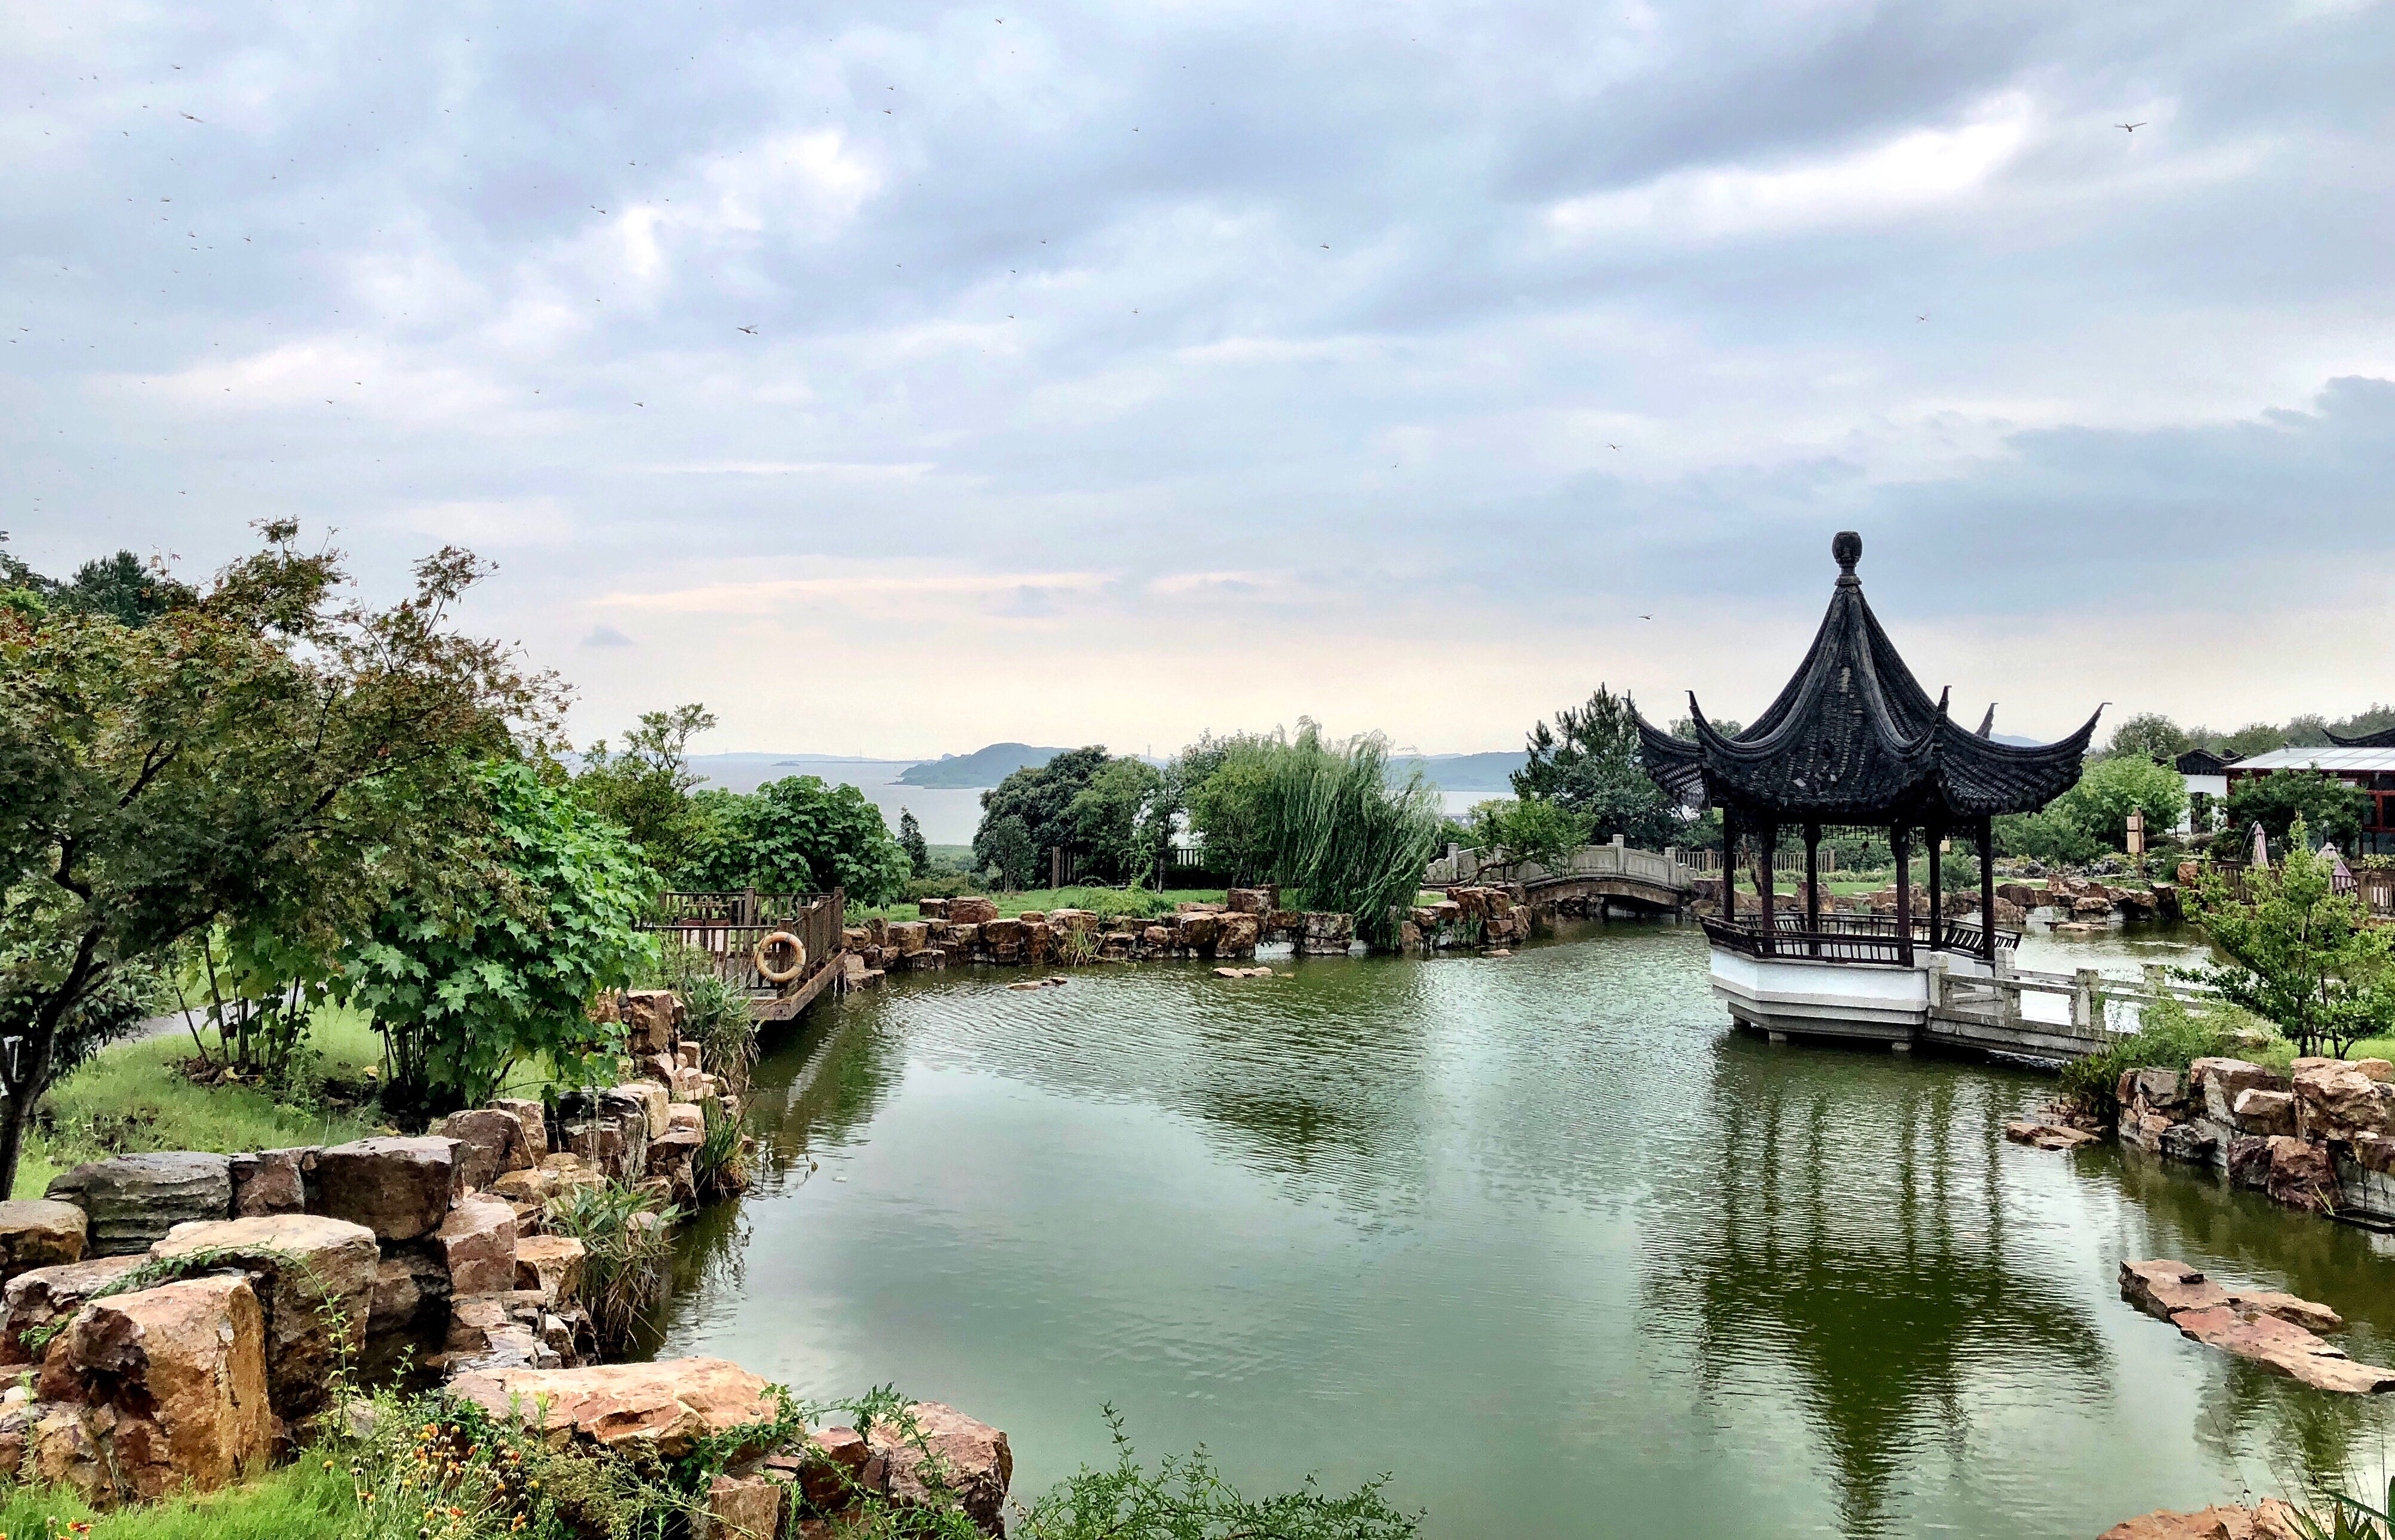 The photos shown is of gardens located in Suzhou China